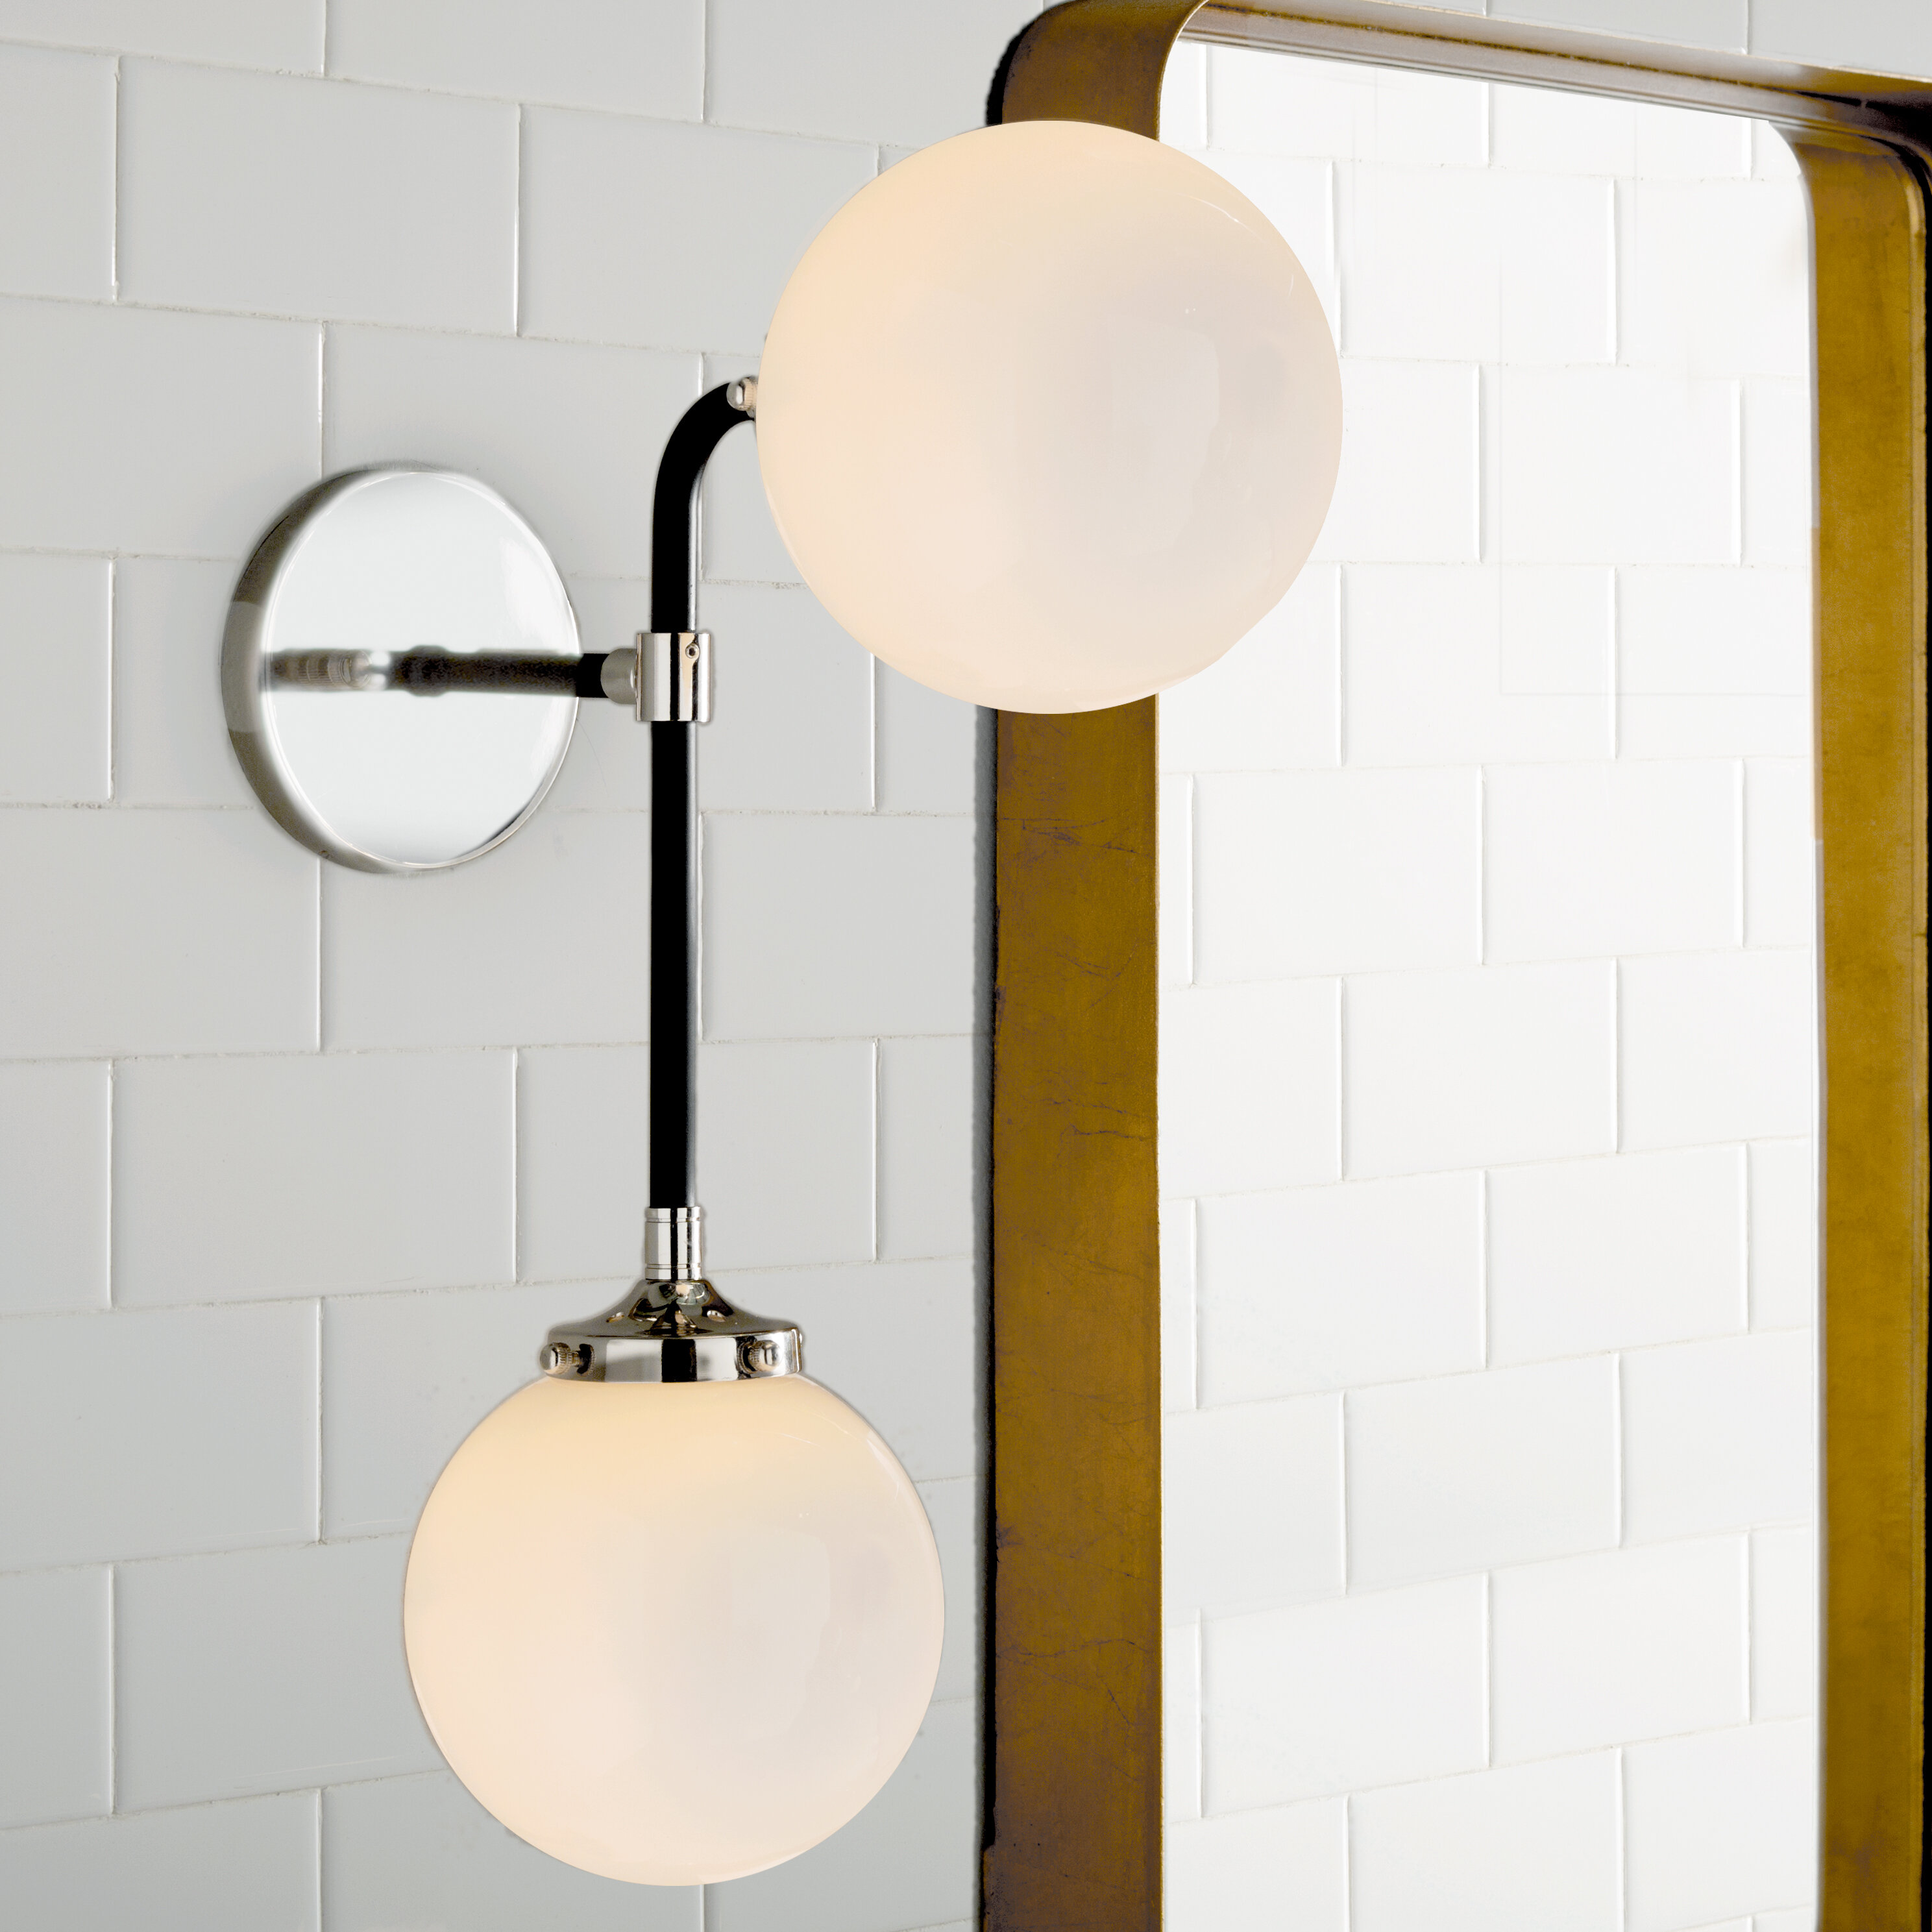 Mid century modern sconces youll love sam 2 light wall sconce aloadofball Image collections